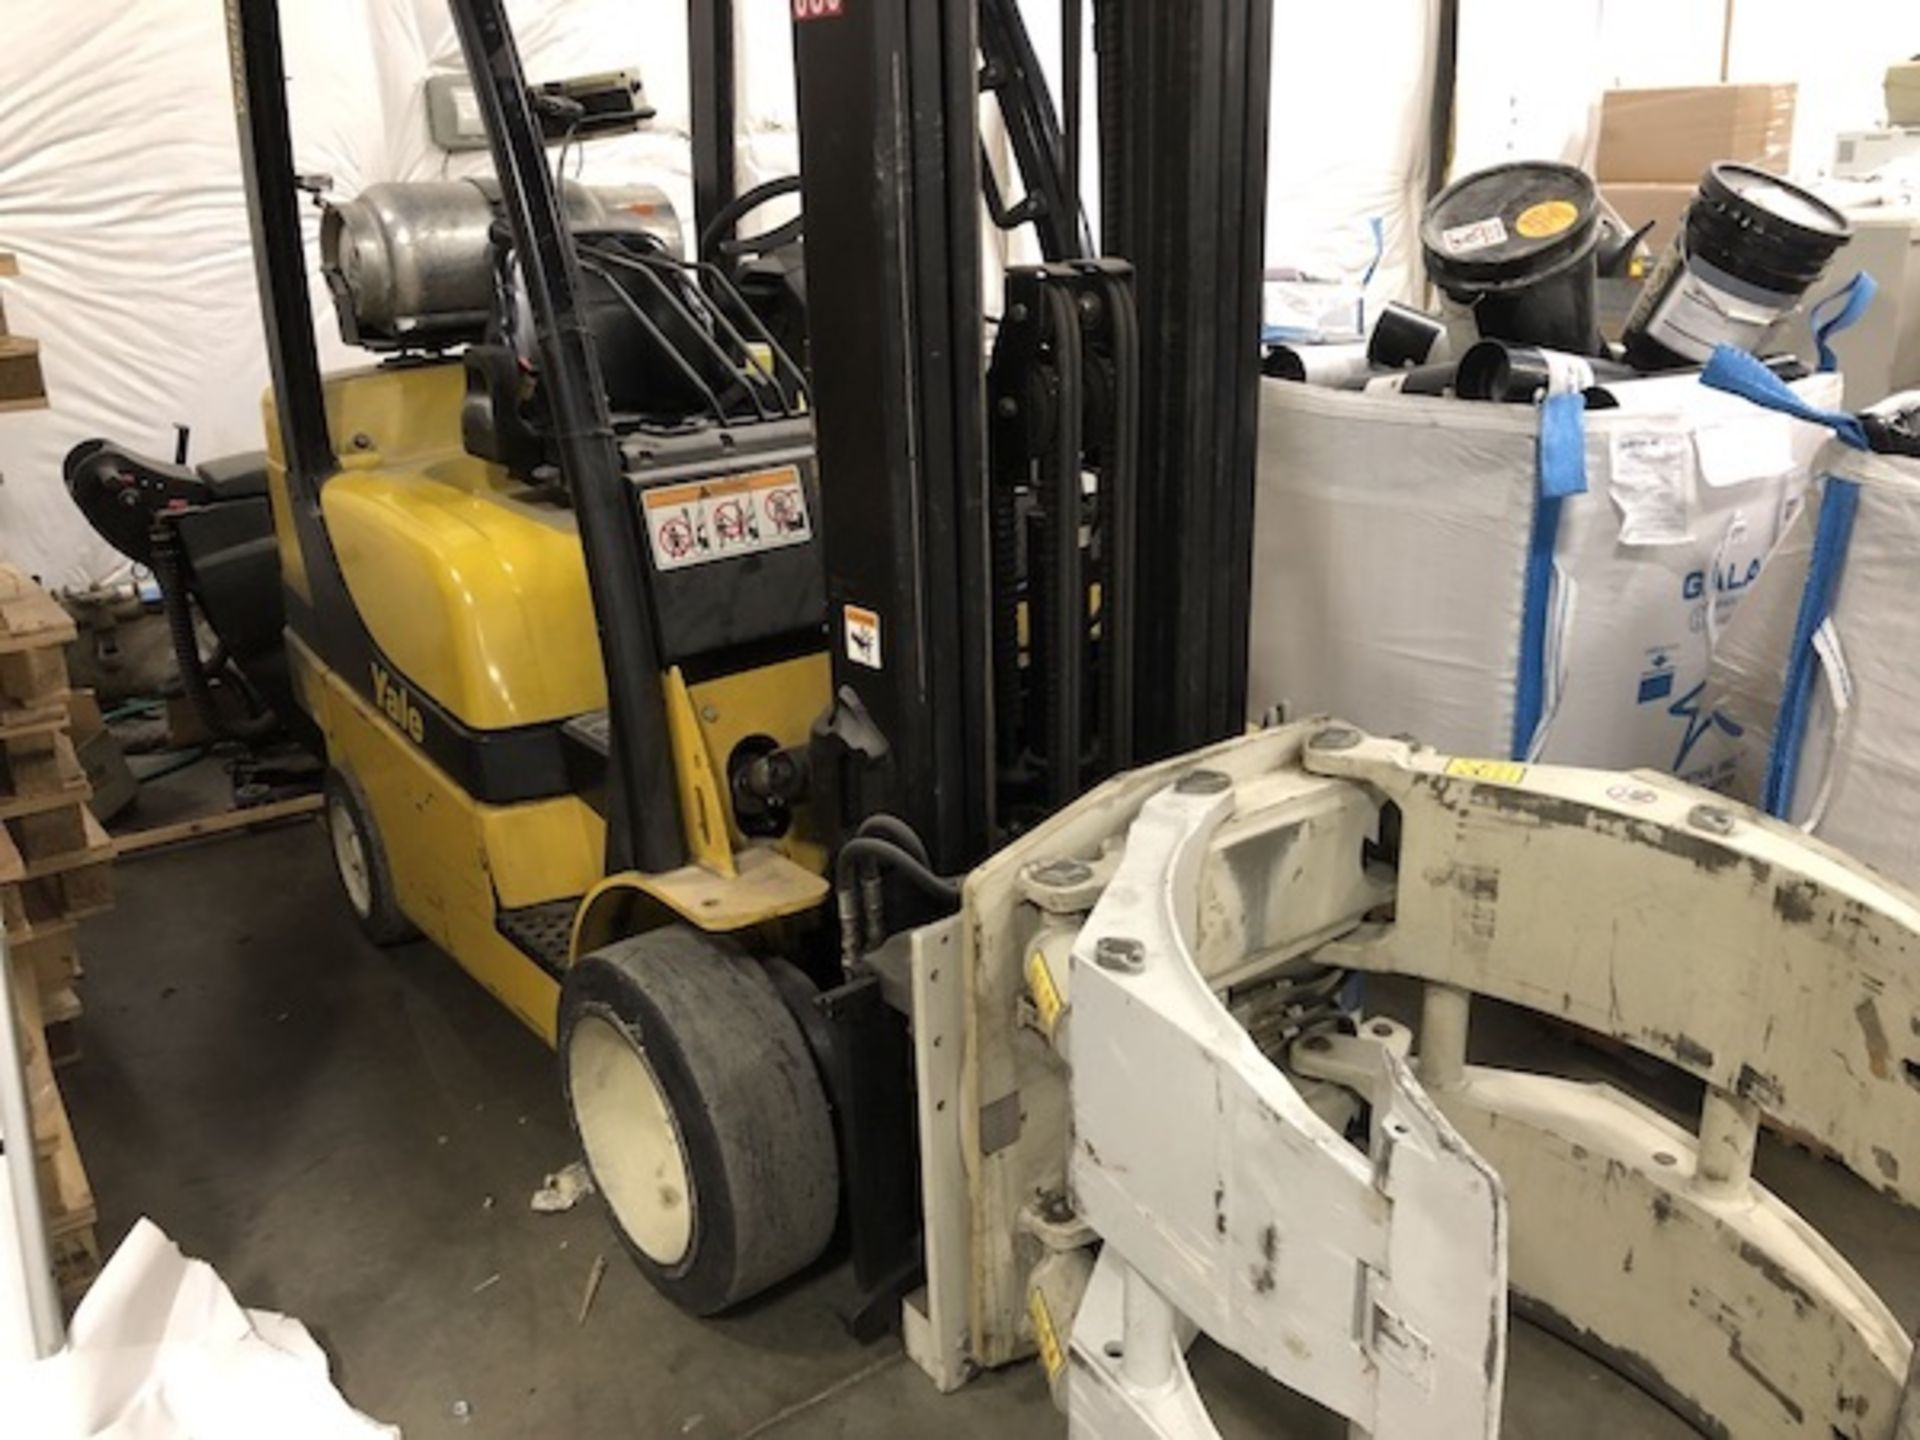 Lot 30 - Yale Forklift, LP Fueled, 4,400-Lb Capacity, With Cascade Roll Clamp,